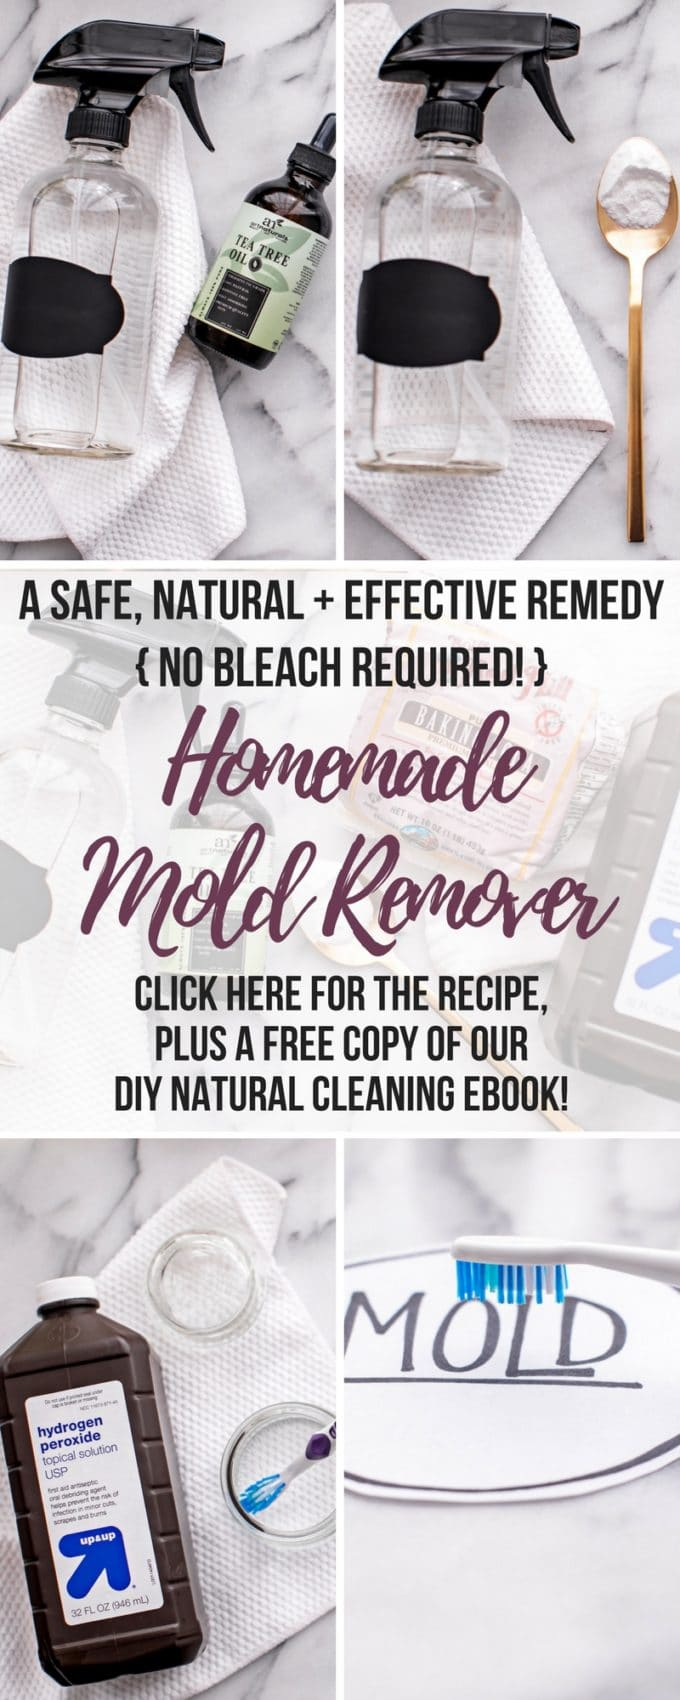 Diy black mold removal - Wondering How To Get Rid Of Mold Naturally Whether You Have Black Mold In Your